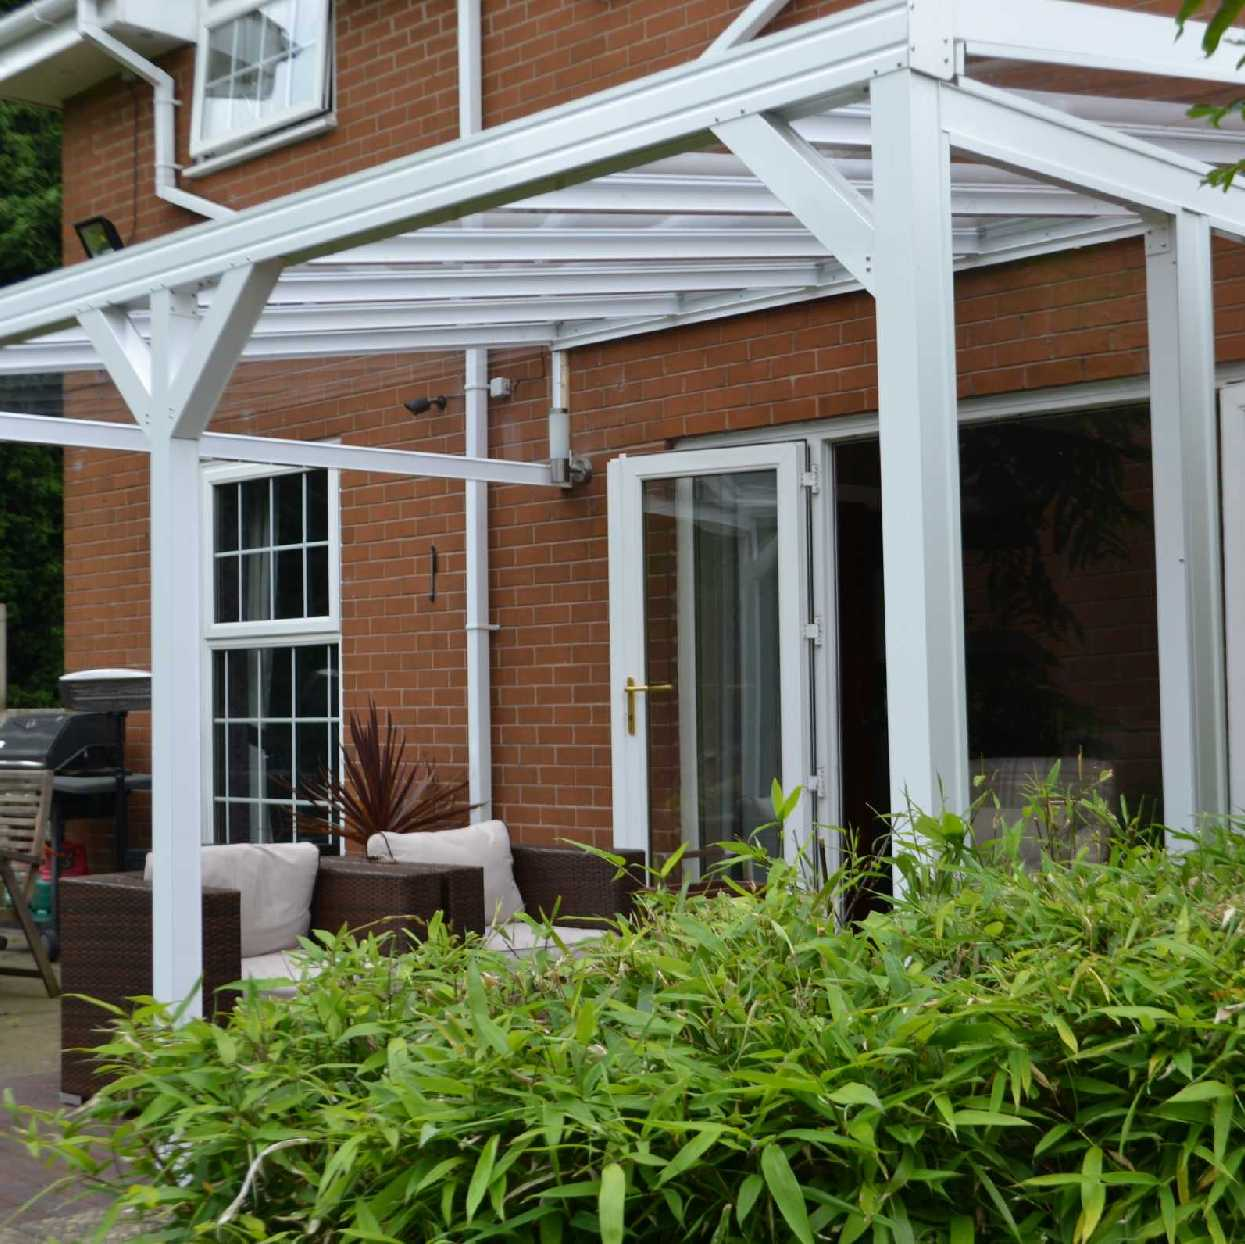 Omega Smart White Lean-To Canopy UNGLAZED for 6mm Glazing - 7.0m (W) x 2.0m (P), (4) Supporting Posts from Omega Build